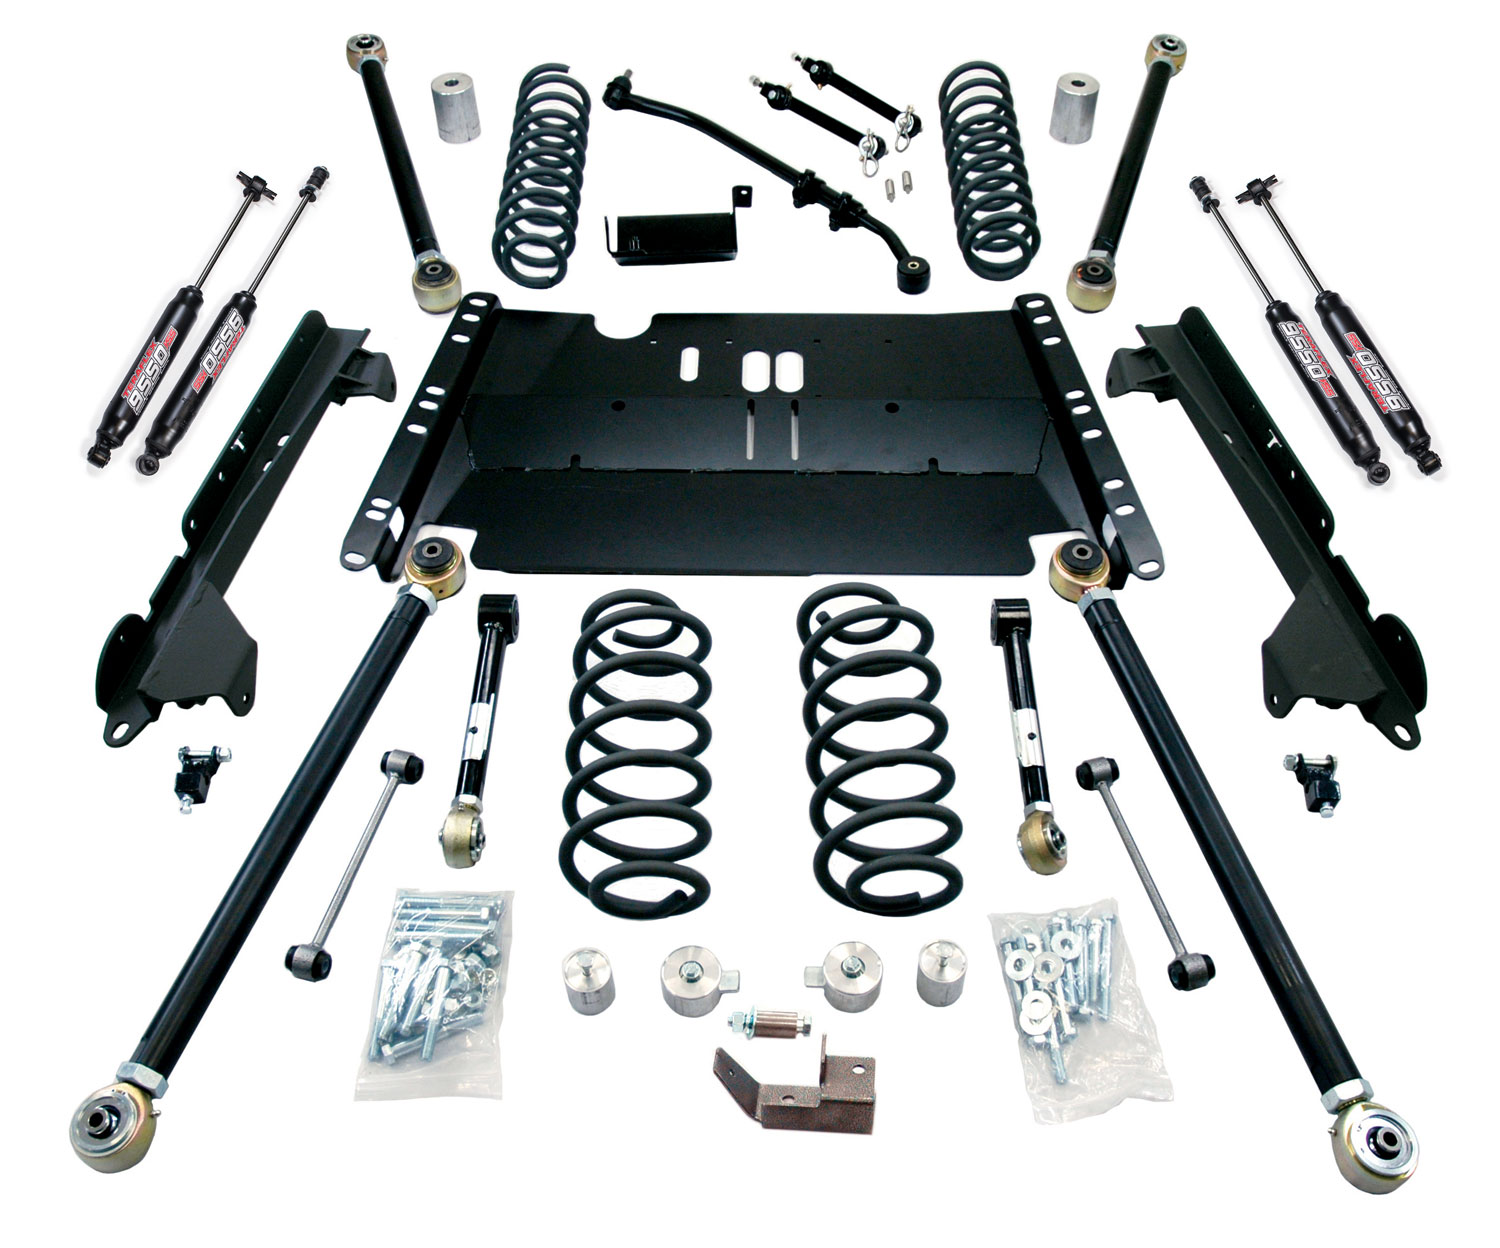 Teraflex 3in Unlimited Enduro LCG Lift Kit W/9550 Shocks - LJ